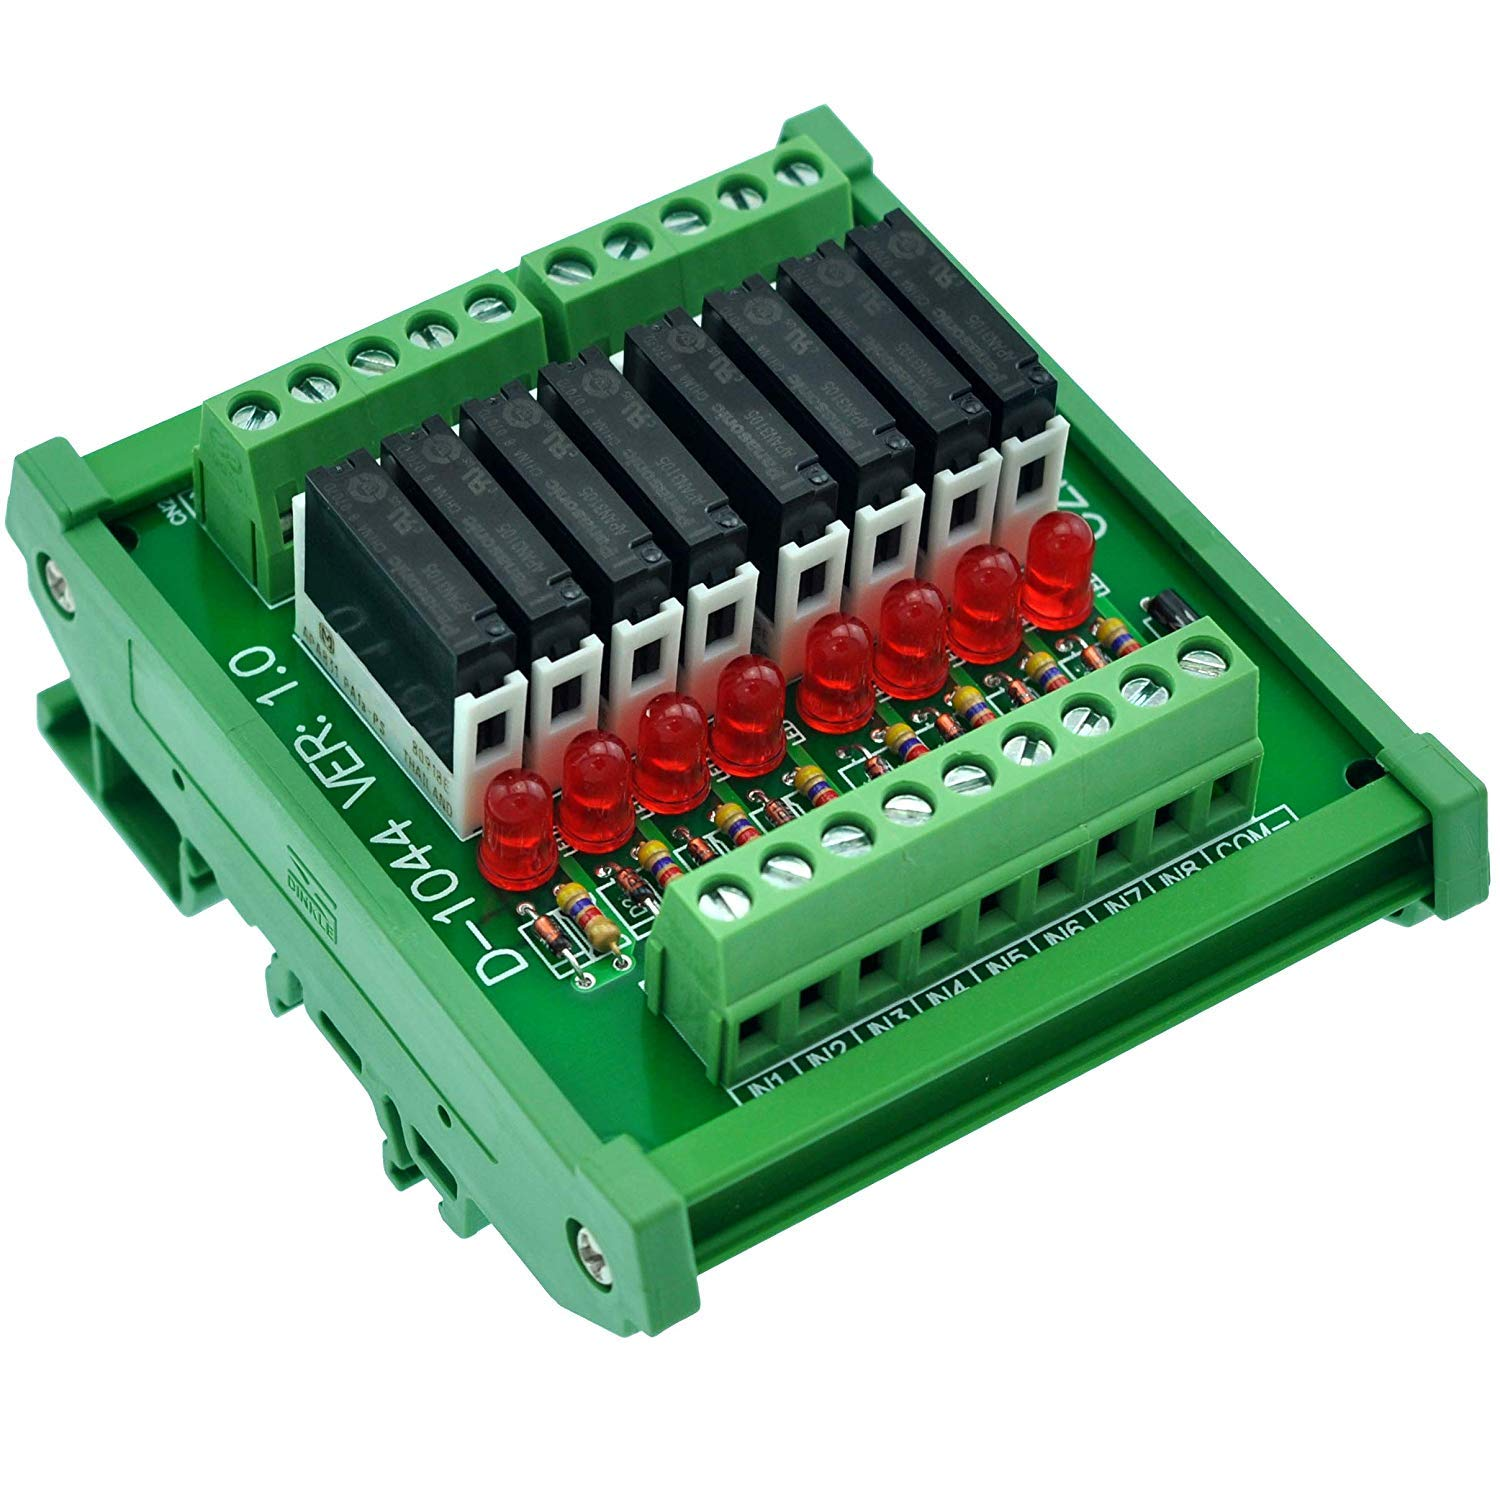 Electronics-Salon Slim DIN Rail Mount SPST-NO 67% OFF of fixed Complete Free Shipping price DC5V PNP Source 8